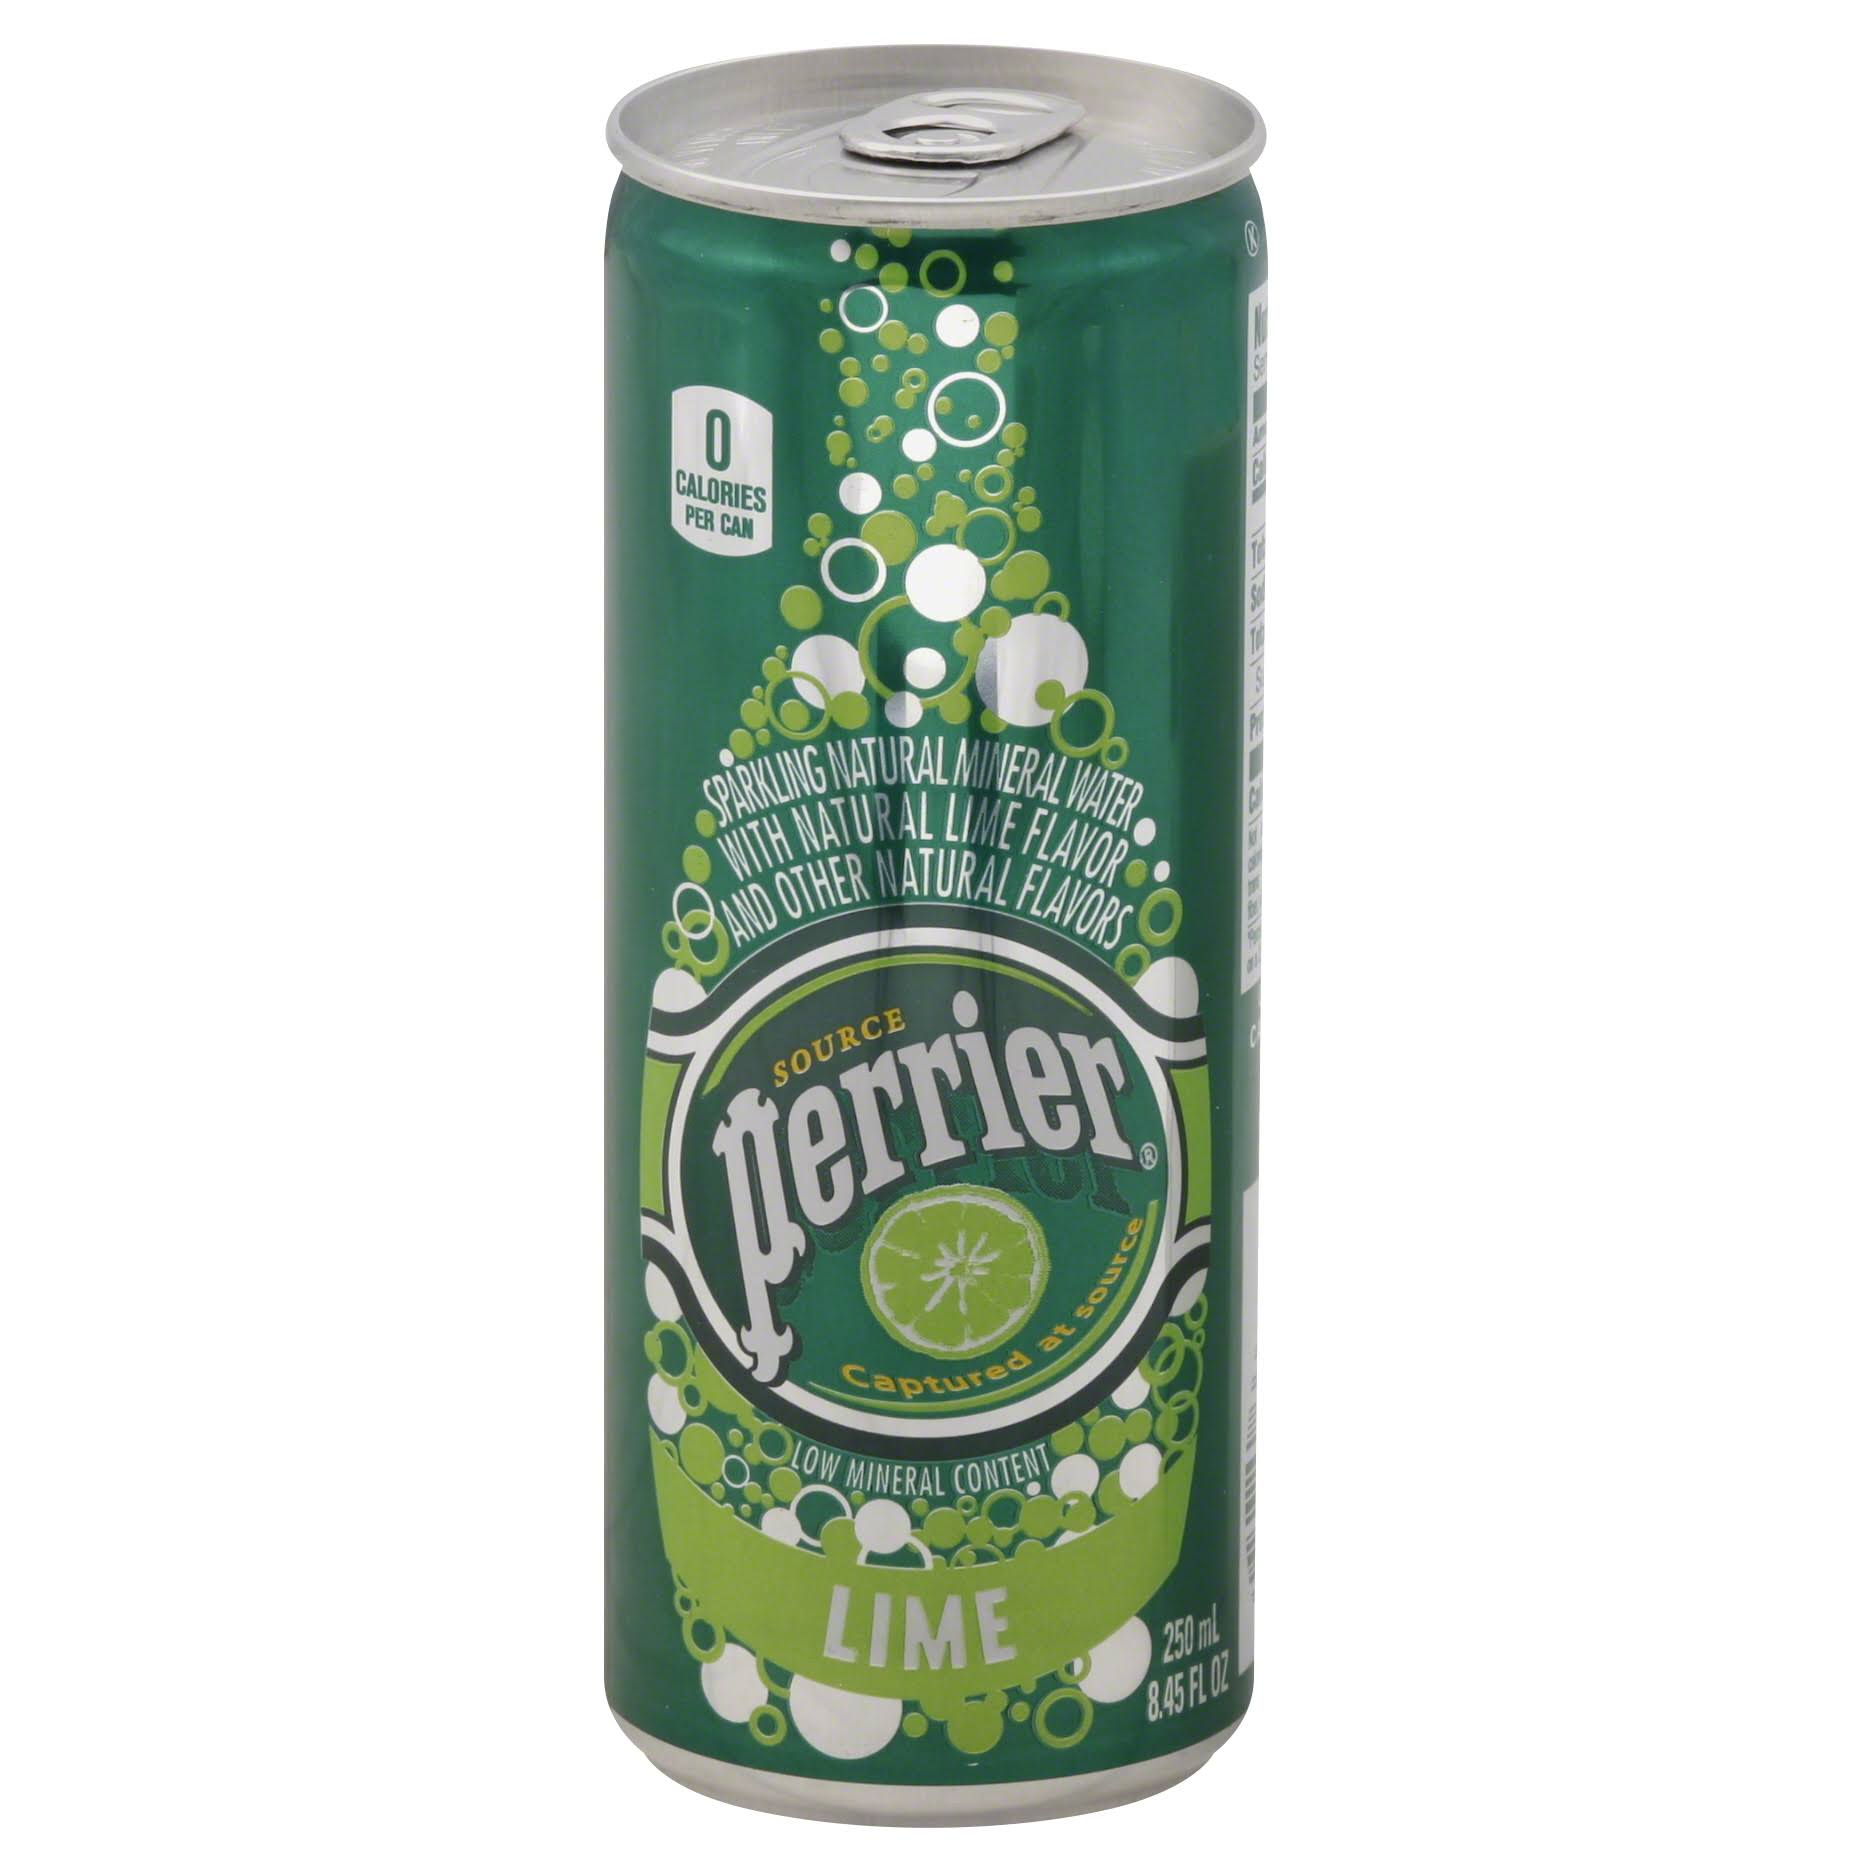 Perrier Sparkling Natural Mineral Water - Lime, 250ml